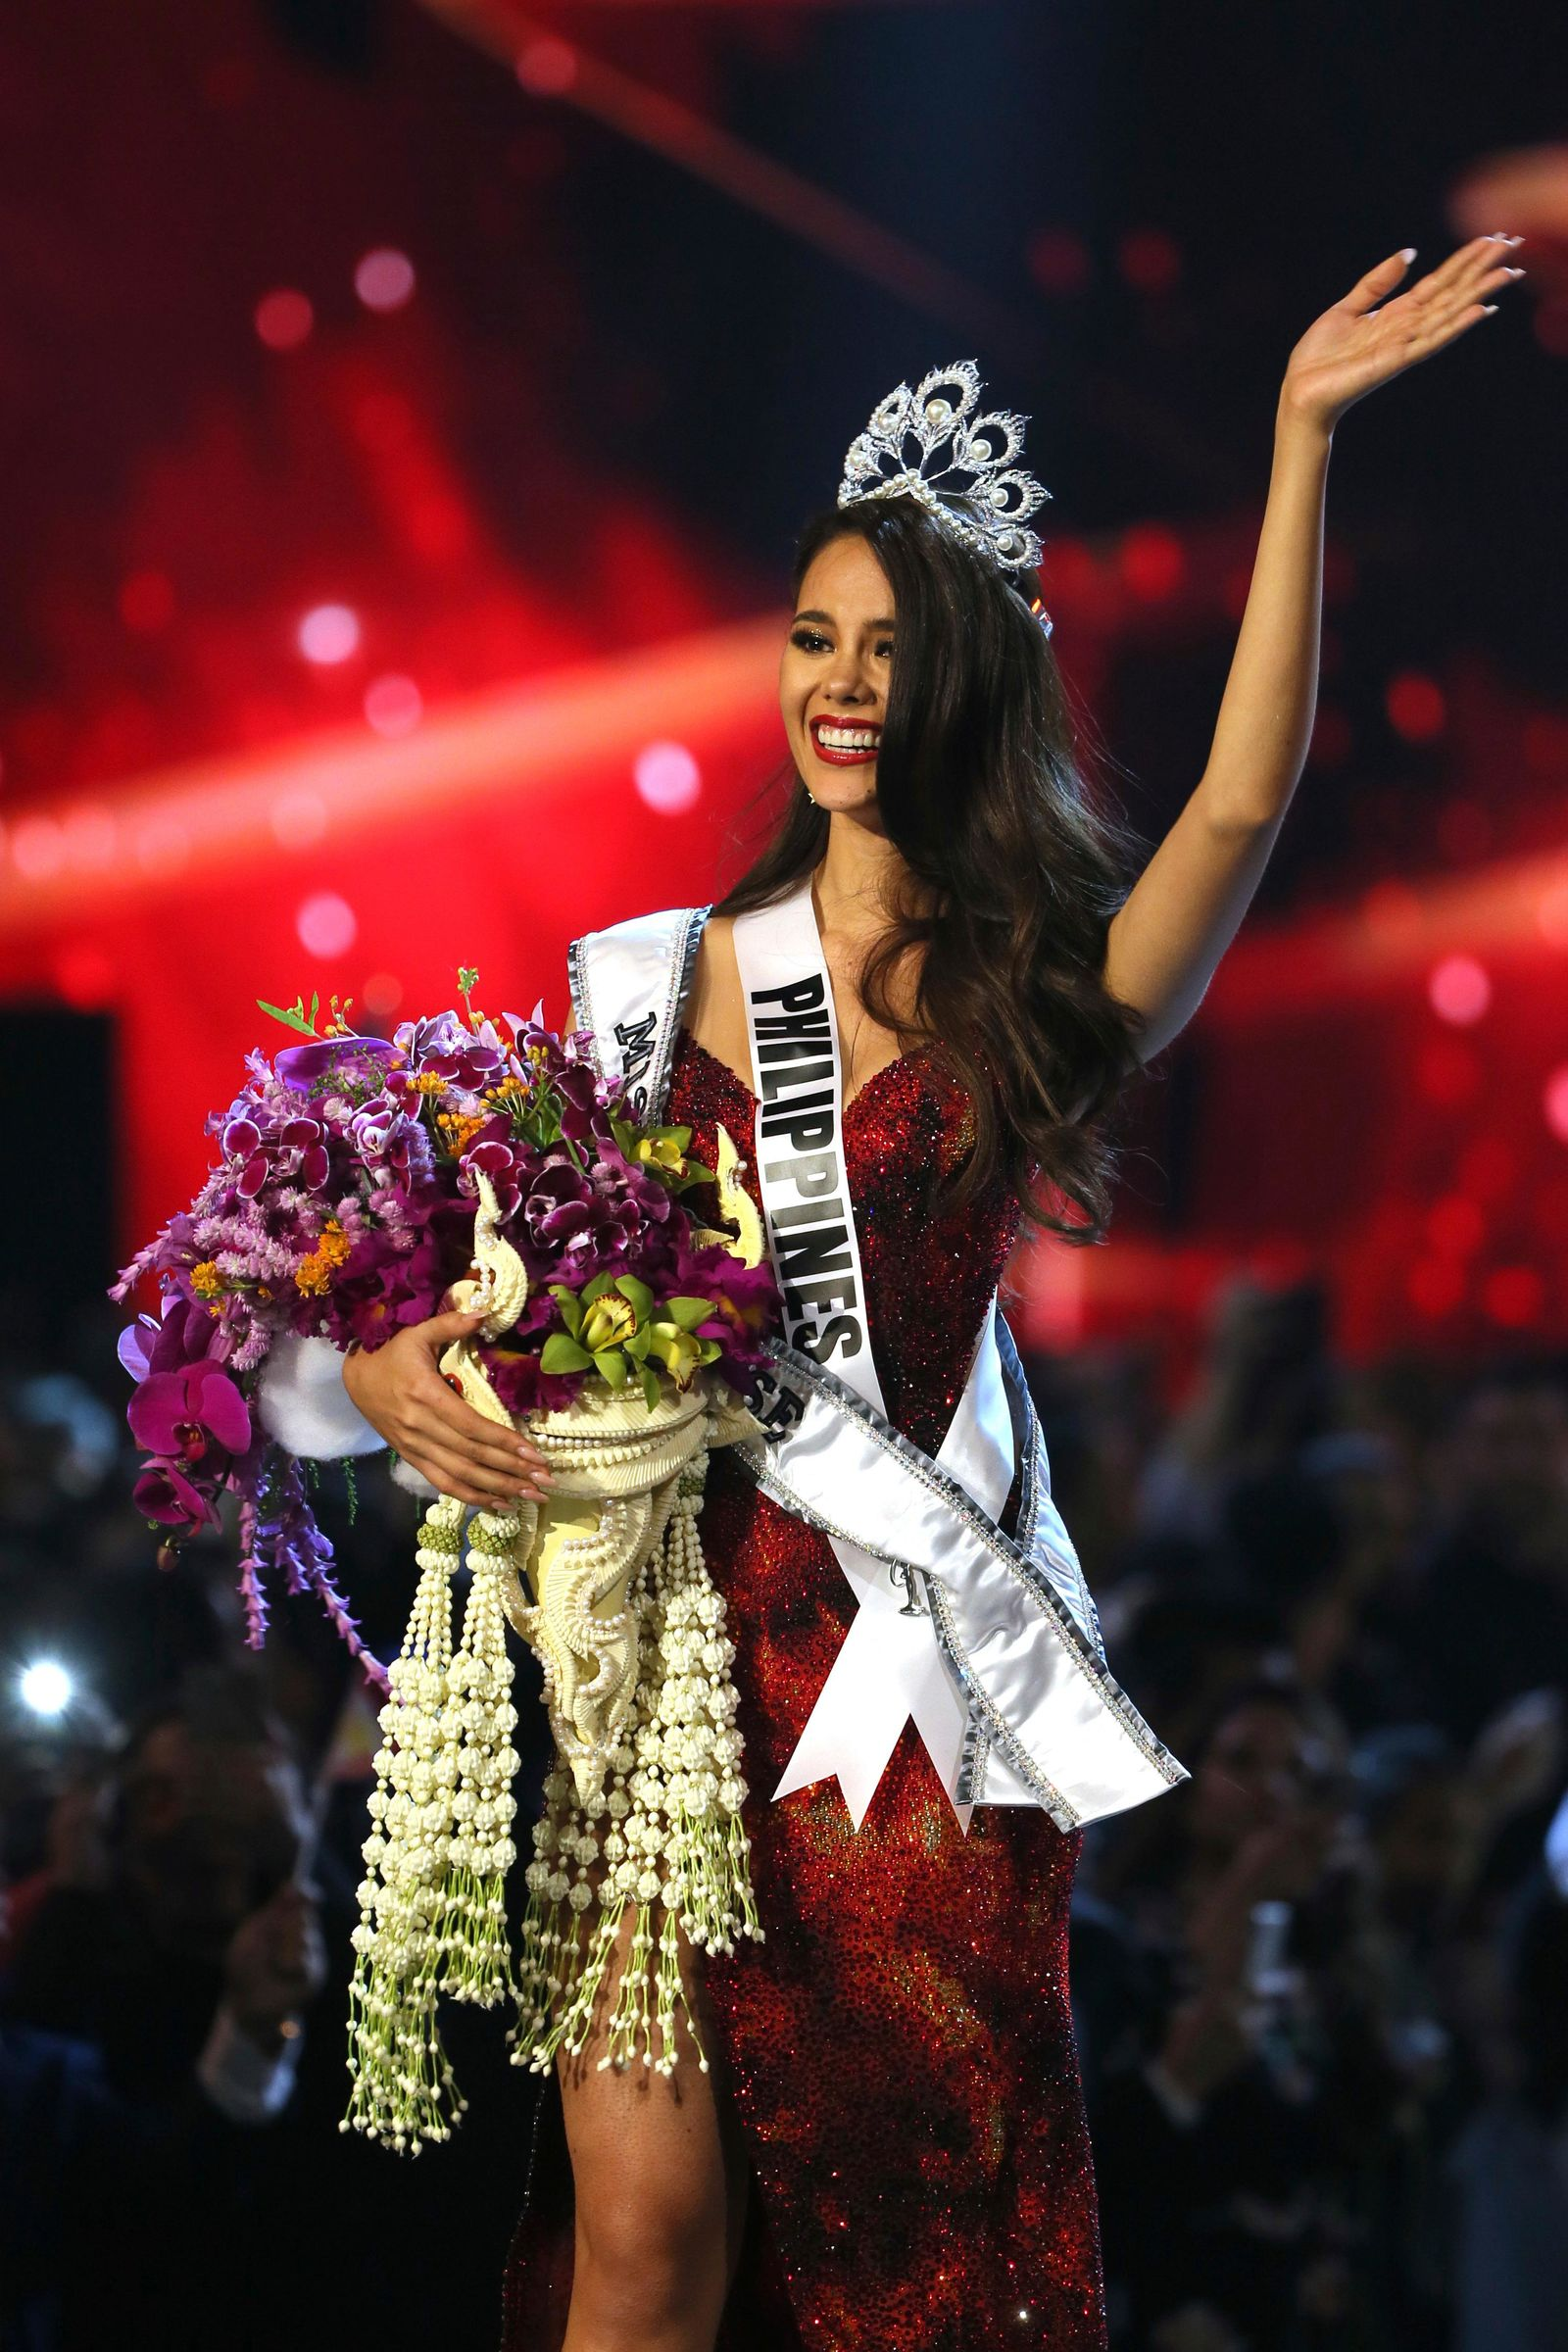 Miss Philippines Catriona Gray waves after being crowned Miss Universe during the final round of 67th Miss Universe competition in Bangkok, Thailand, Monday, Dec. 17, 2018.(AP Photo/Gemunu Amarasinghe)